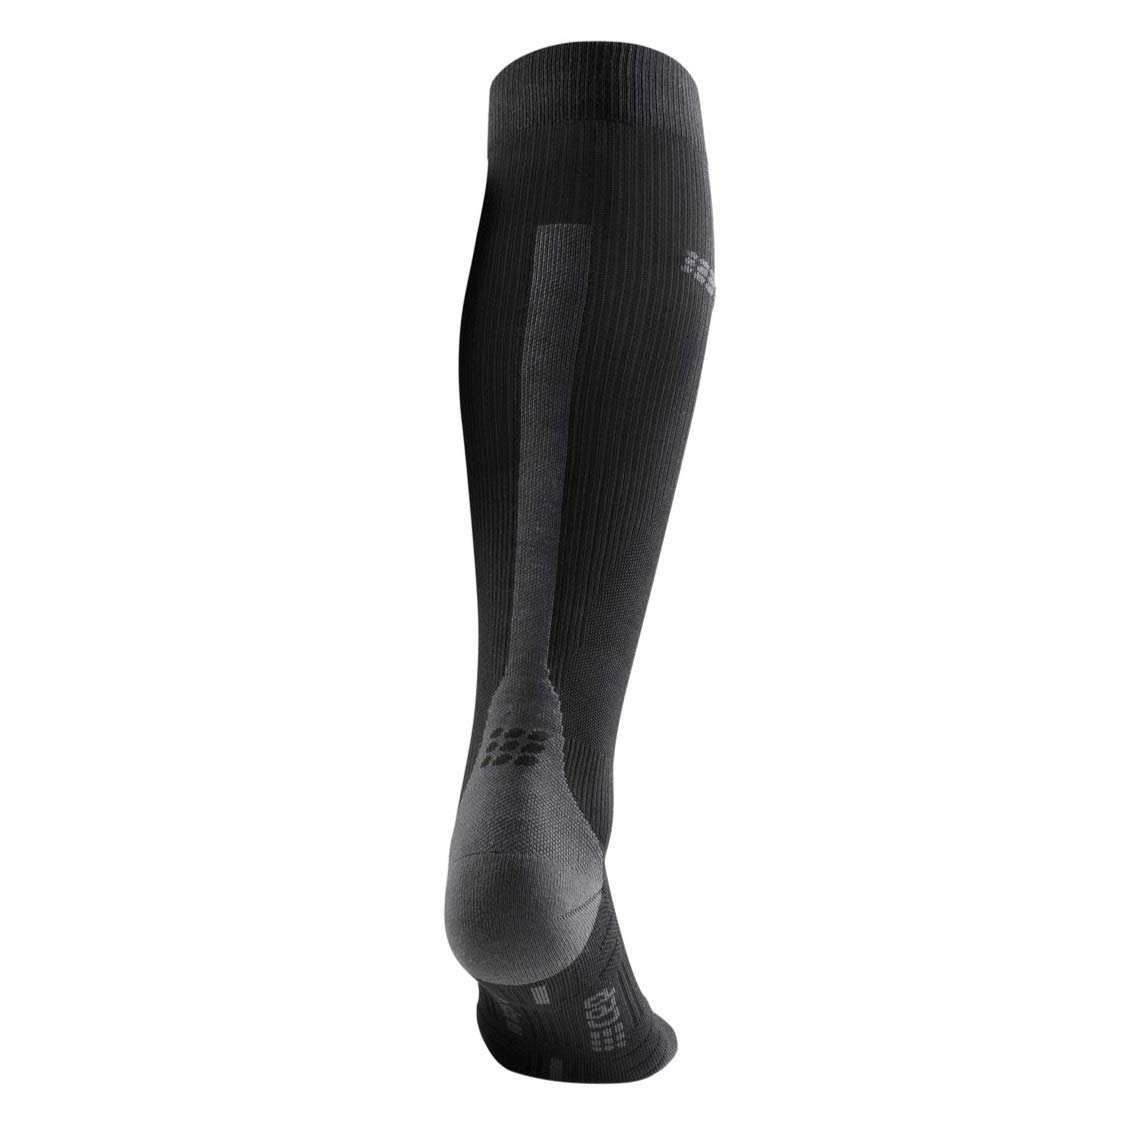 Men/'s Athletic Compression Run Socks CEP Tall Socks for Performance